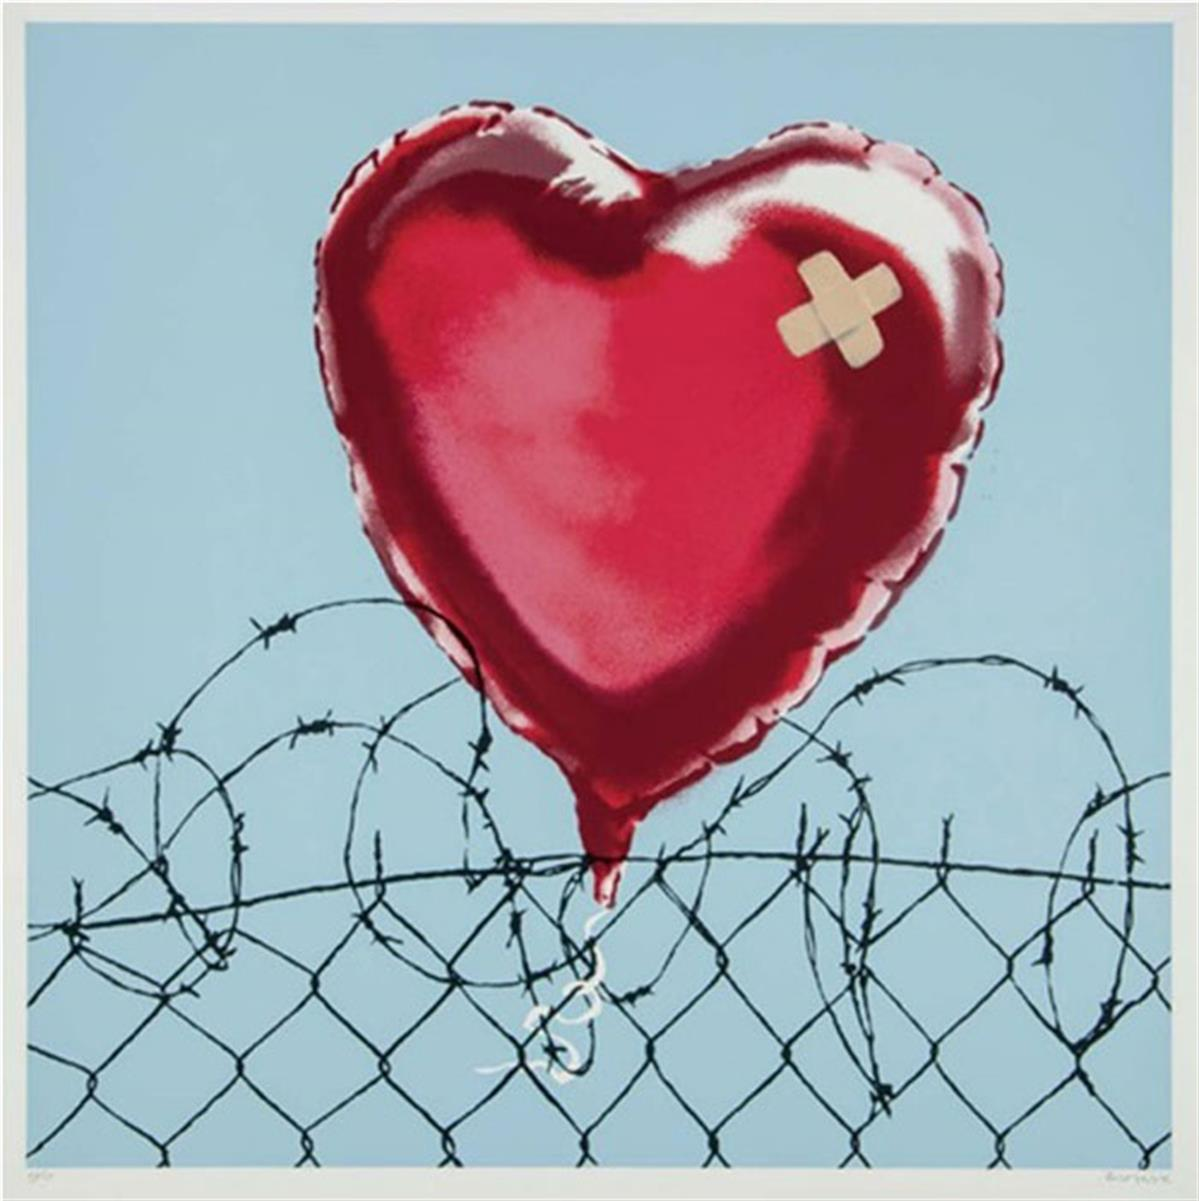 Love Hurts by Banksy